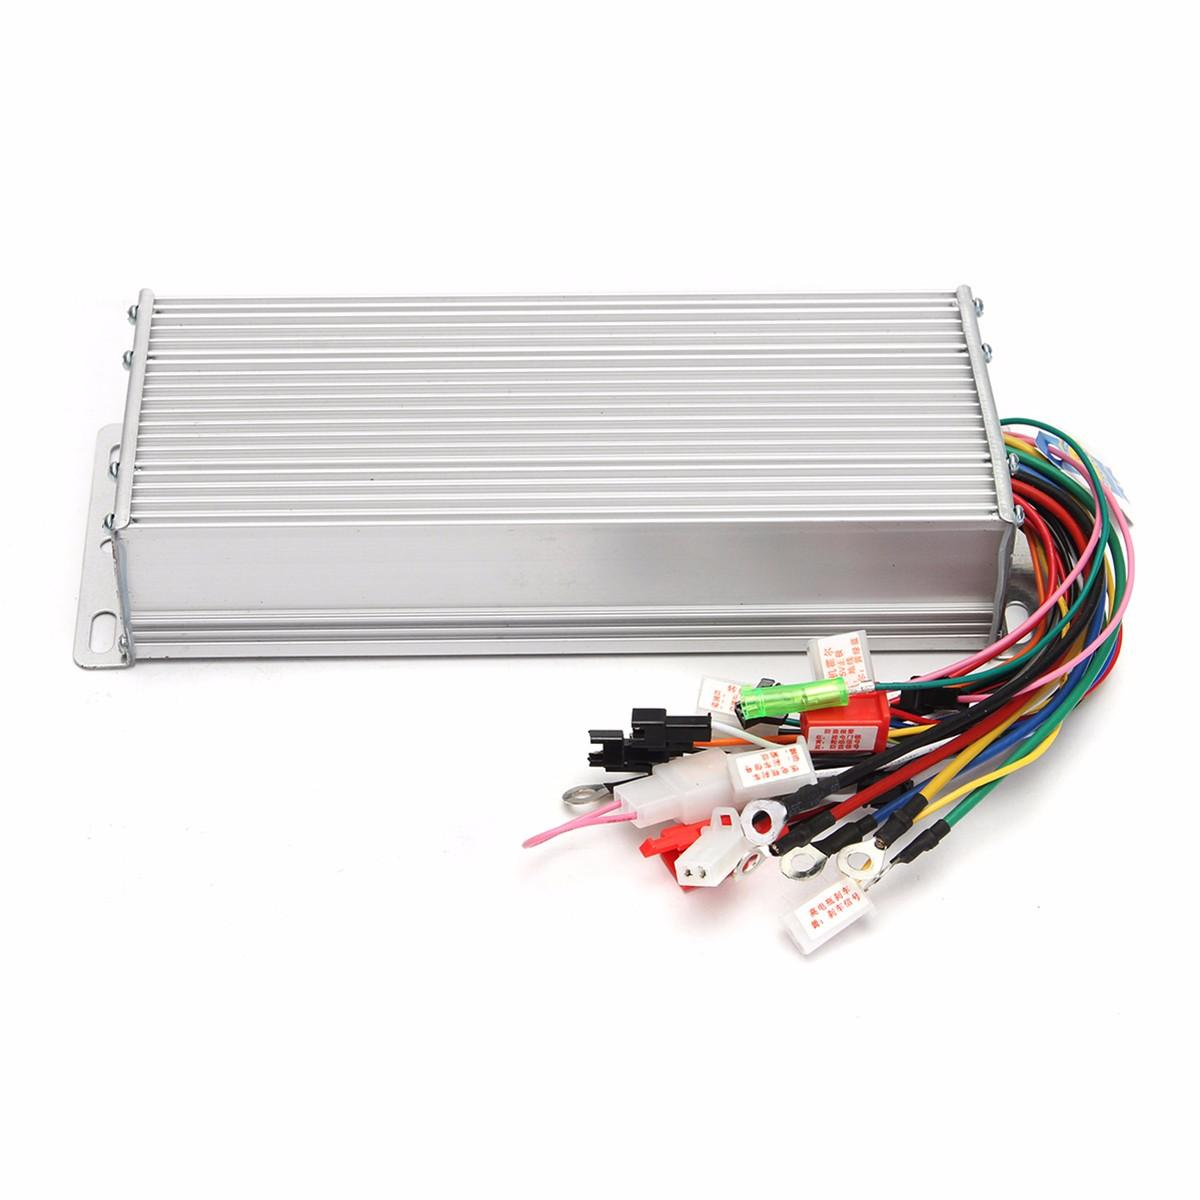 Dc 48v 1500w Brushless Motor Controller For E Bike Scooter Electric Drill Wiring Diagram Bicycle